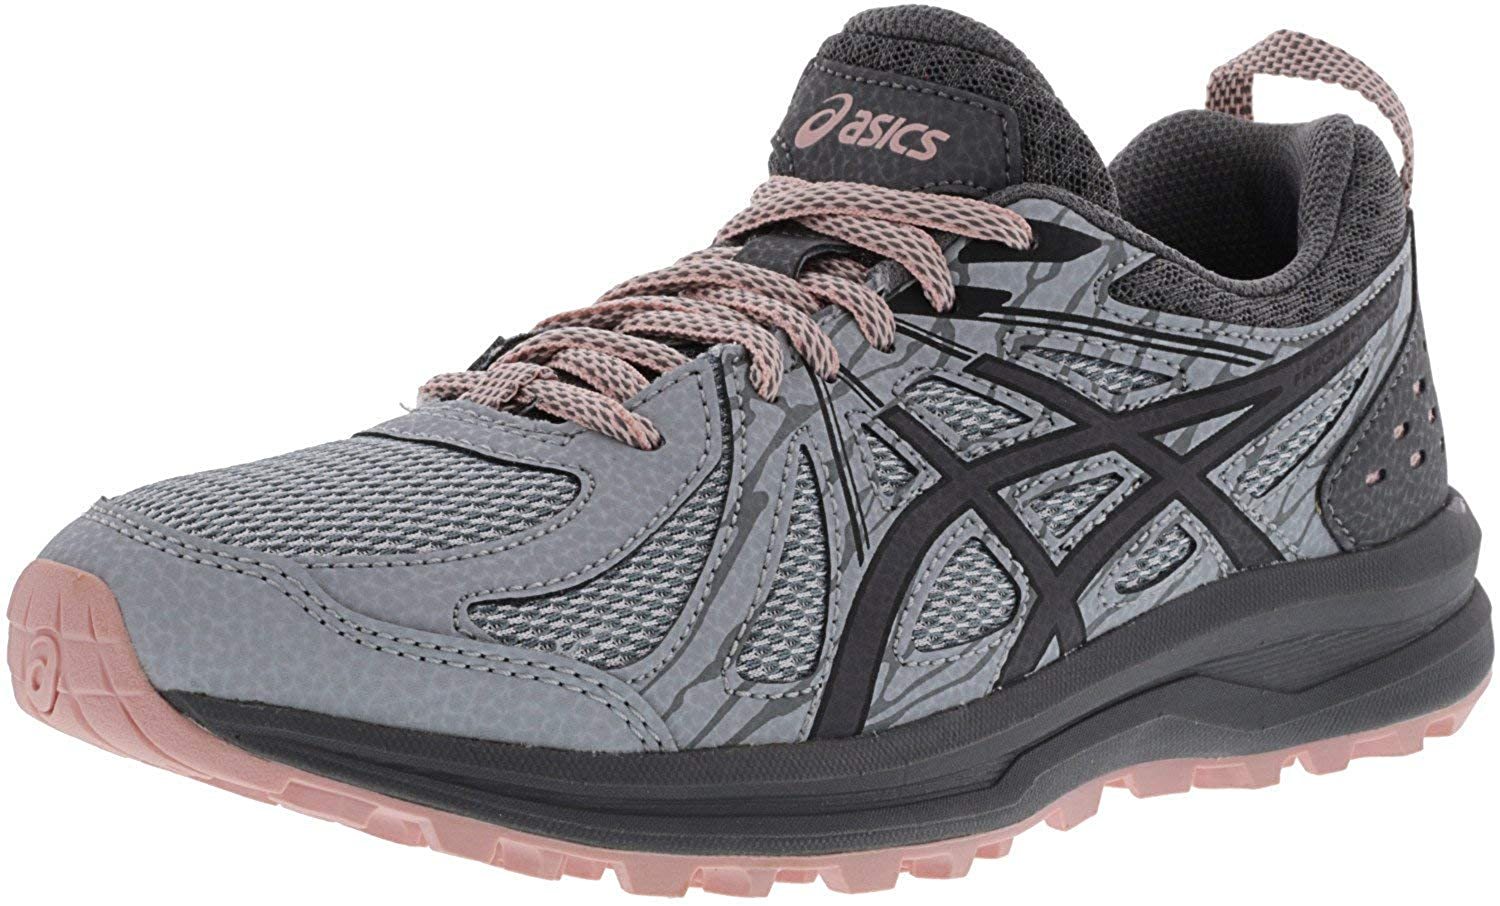 - ASICS Wohommes Frequent Trail Mid gris Carbon Ankle-High Running chaussures - 11W